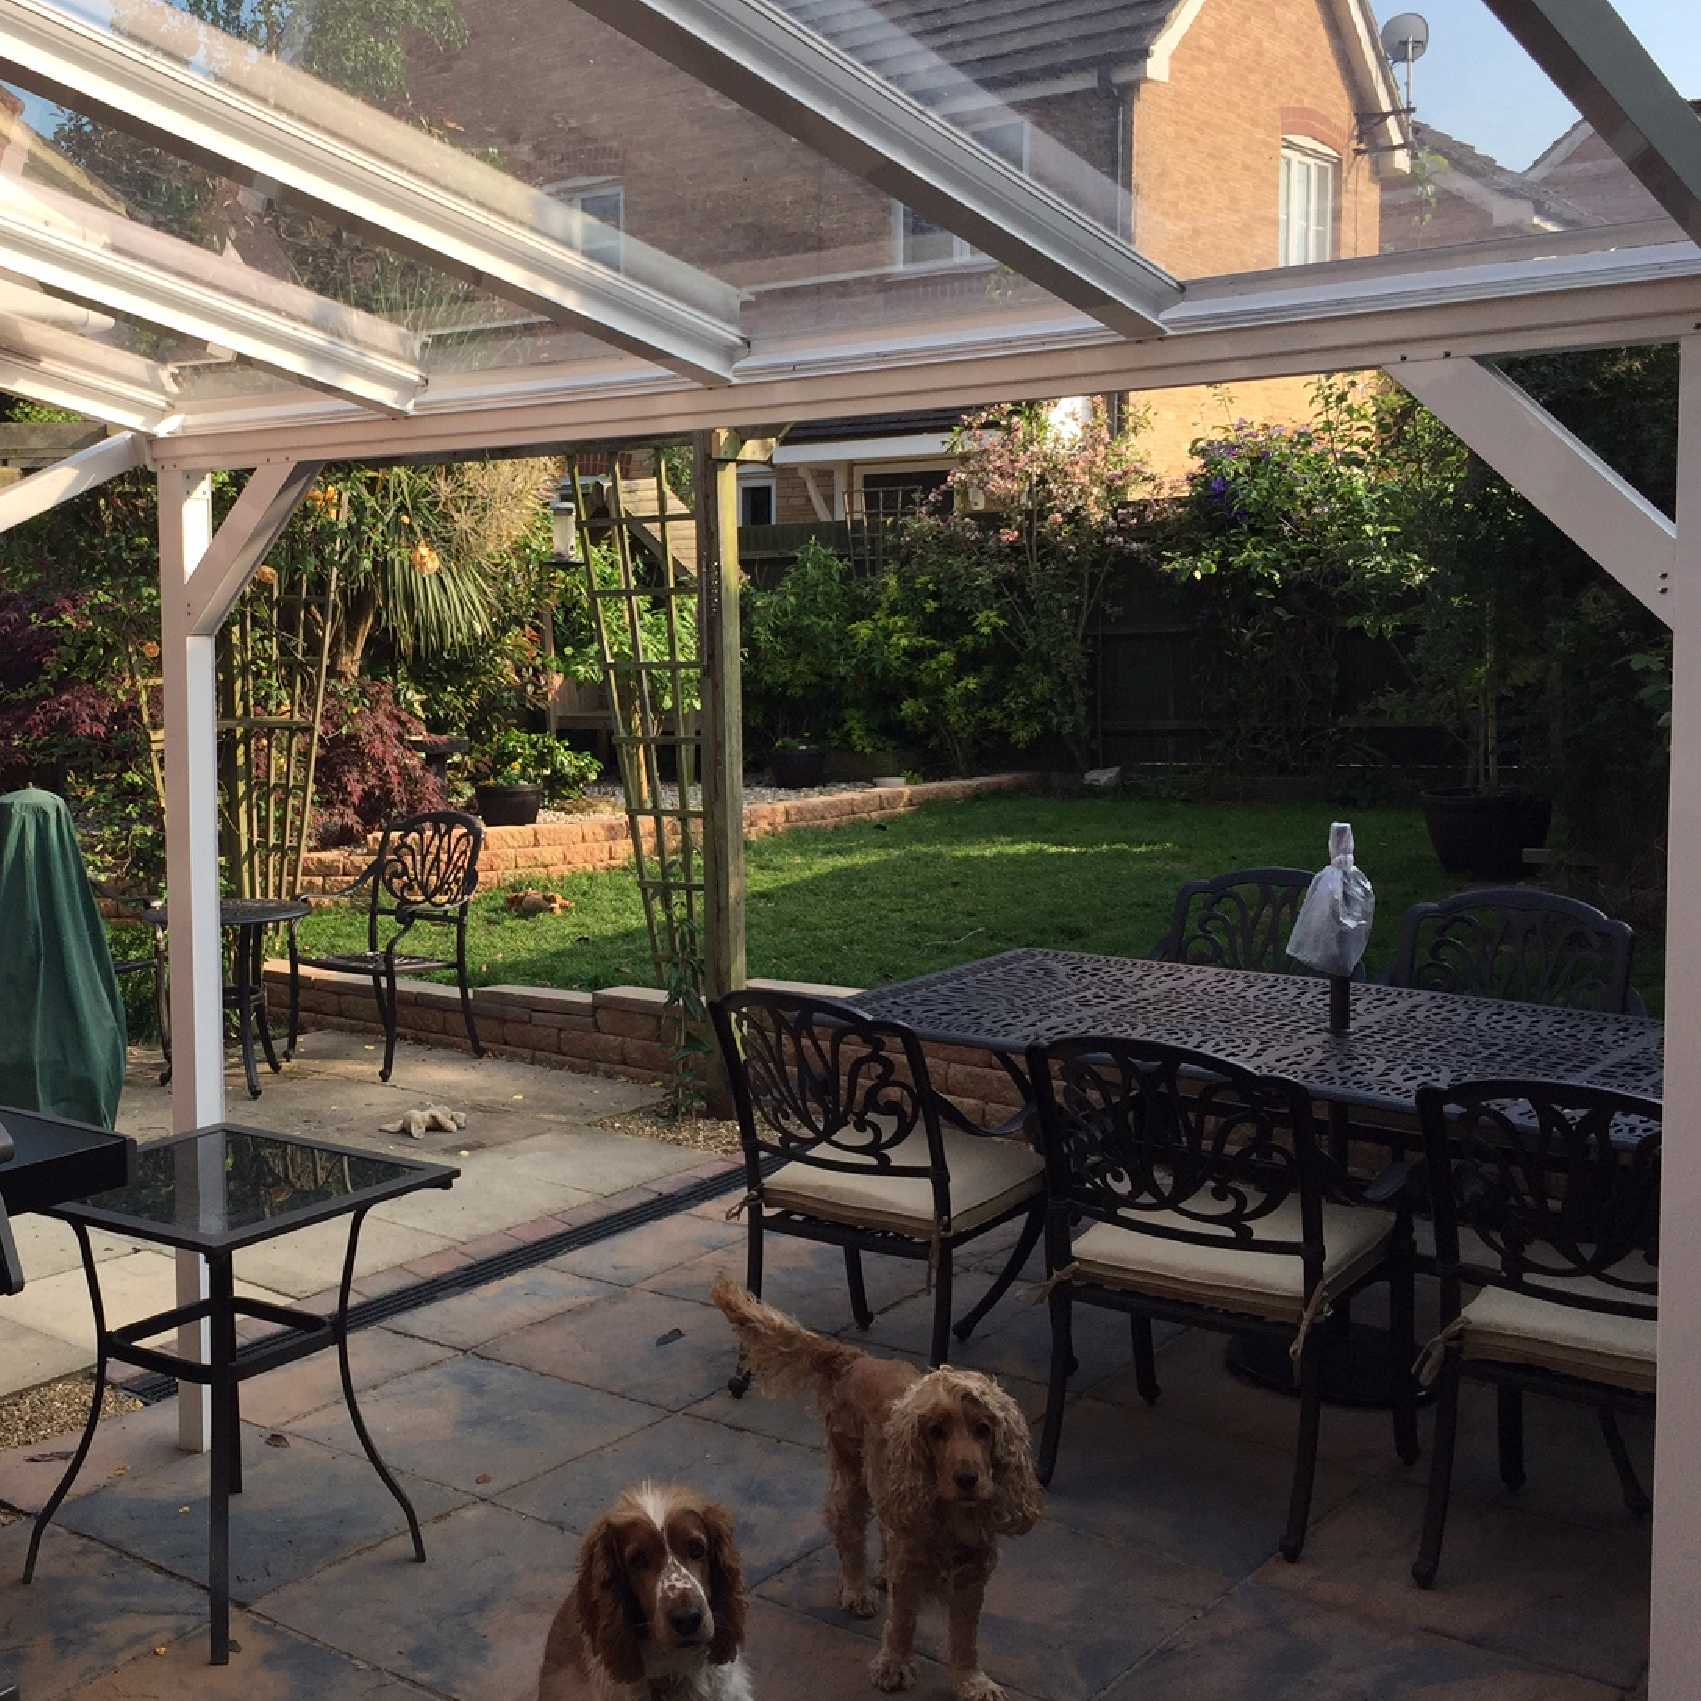 Affordable Omega Smart White Lean-To Canopy with 6mm Glass Clear Plate Polycarbonate Glazing - 2.8m (W) x 3.5m (P), (2) Supporting Posts